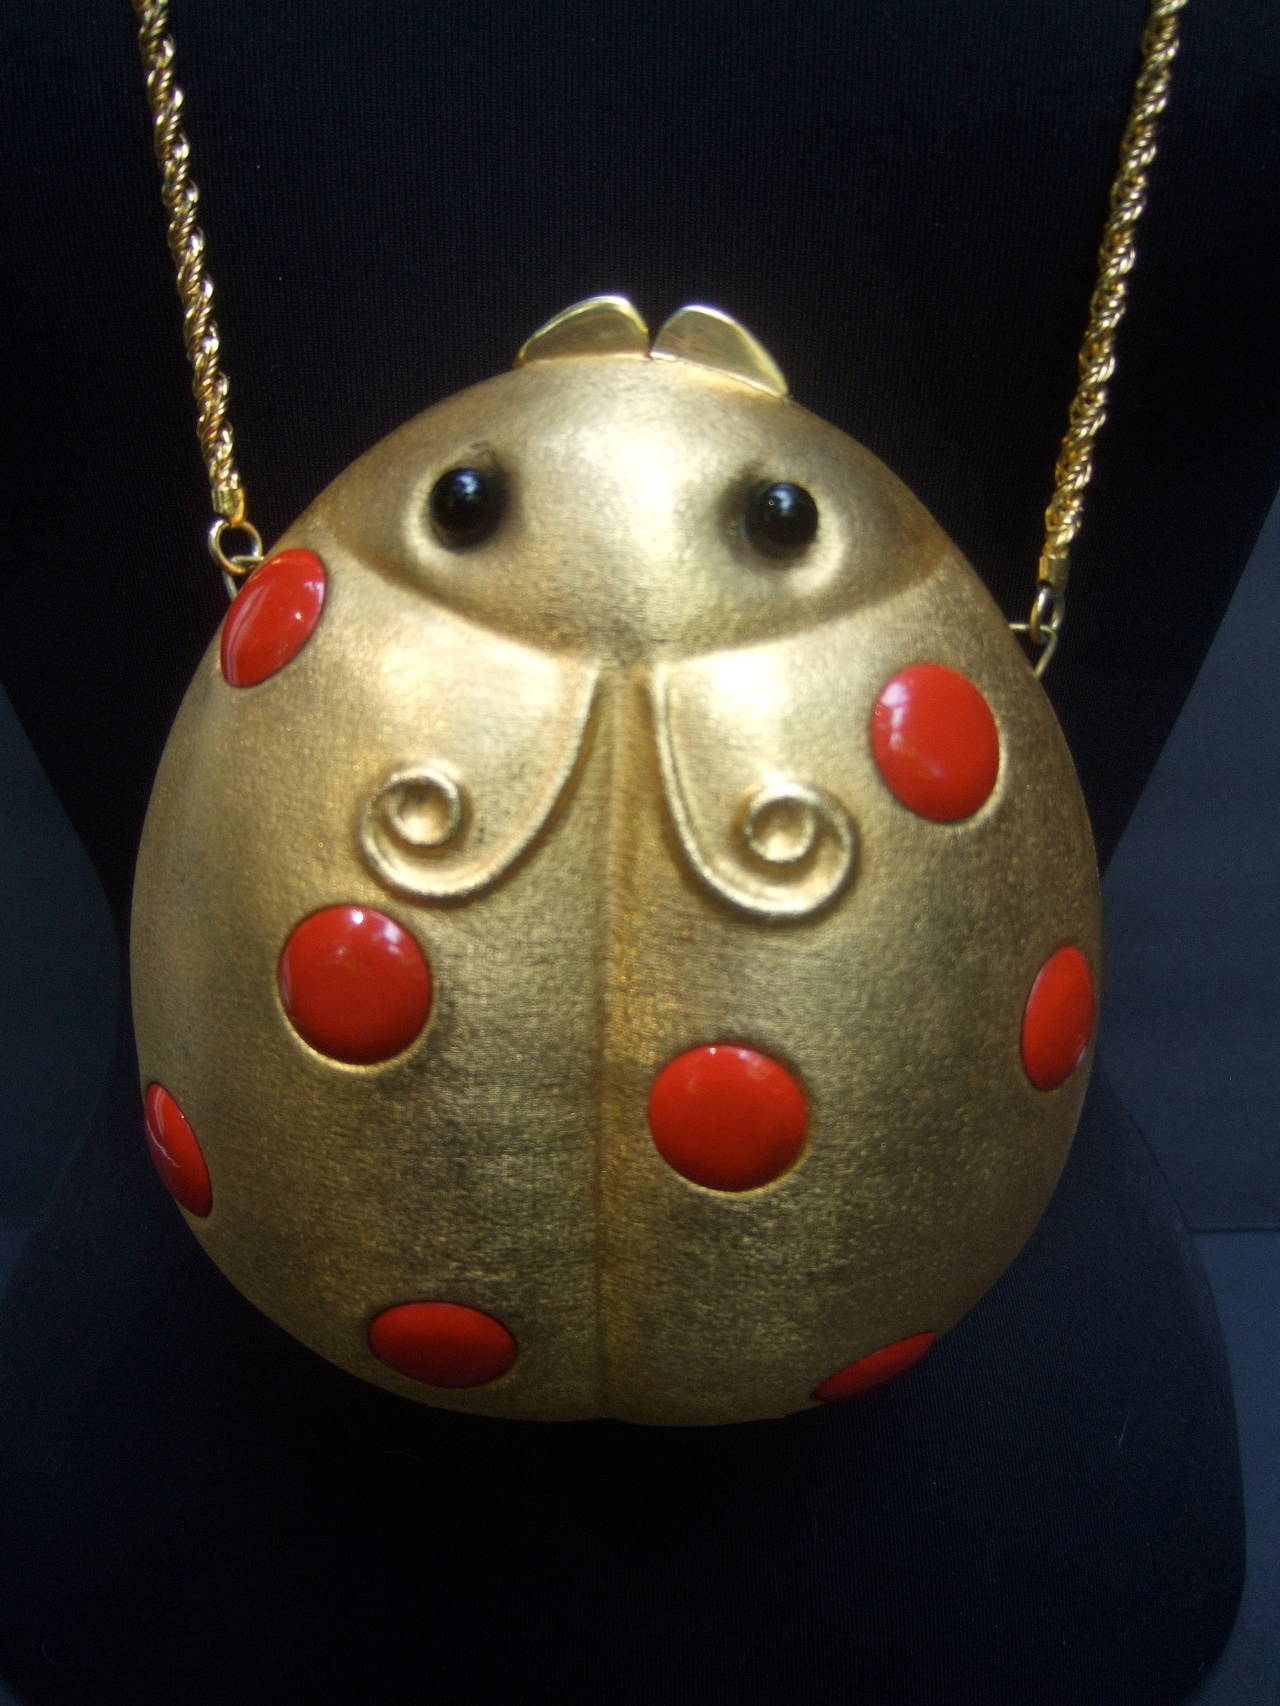 Saks Fifth Avenue Gilt Metal Lady Bug Evening Bag Made in Italy c 1970 In Good Condition For Sale In Santa Barbara, CA